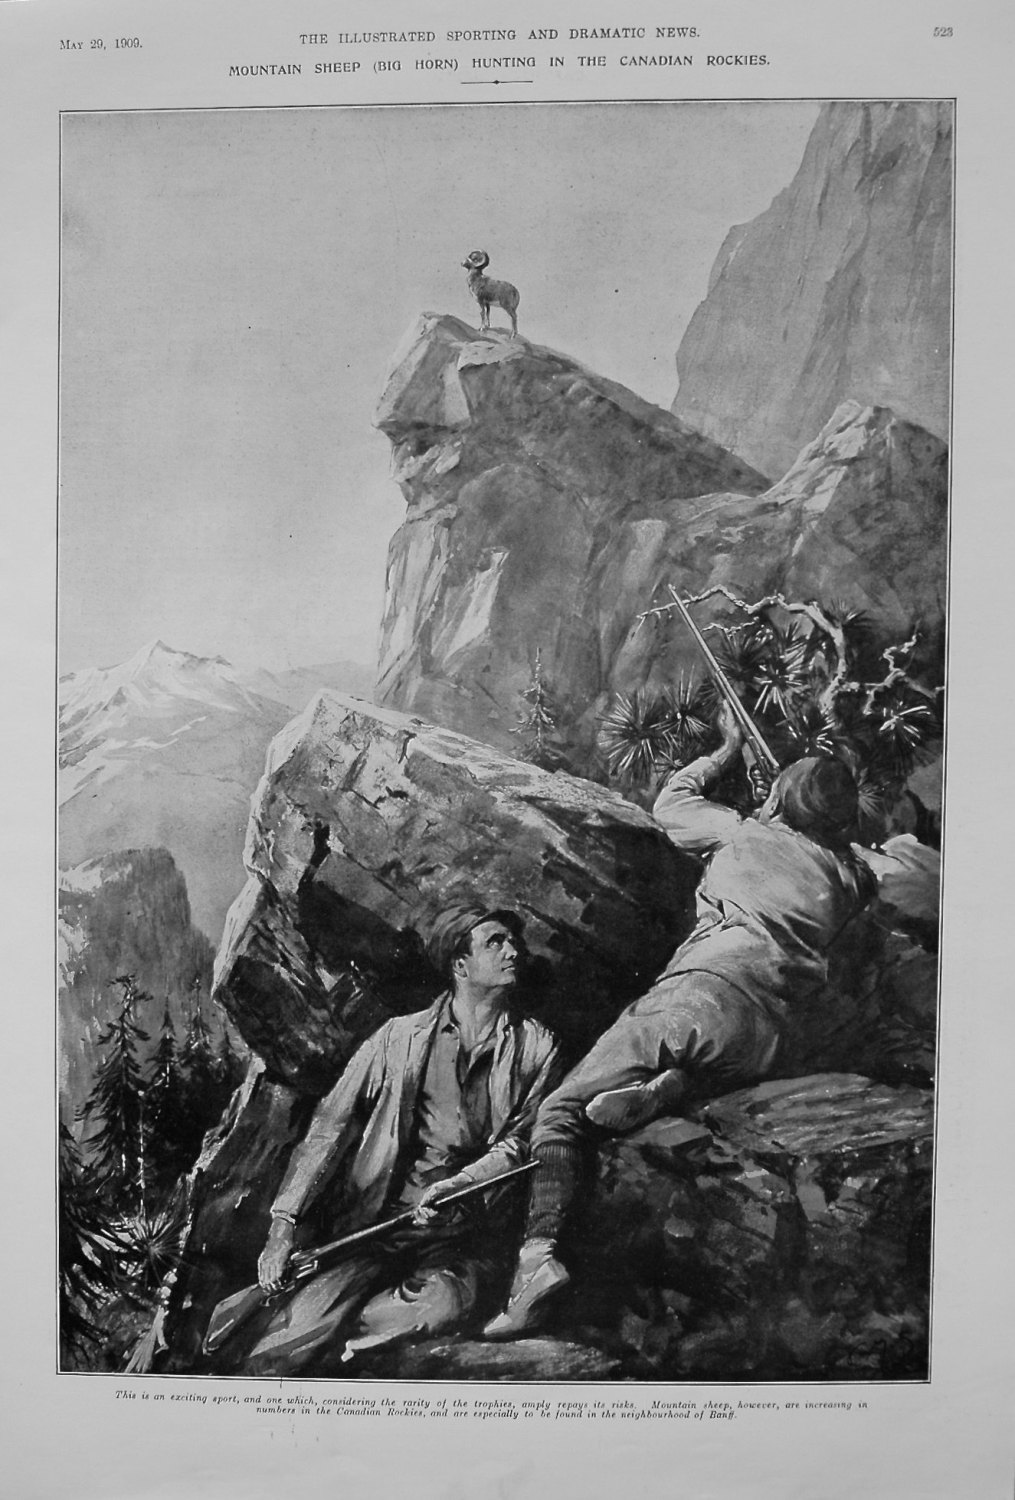 Mountain Sheep (Big Horn) Hunting in the Canadian Rockies. 1909